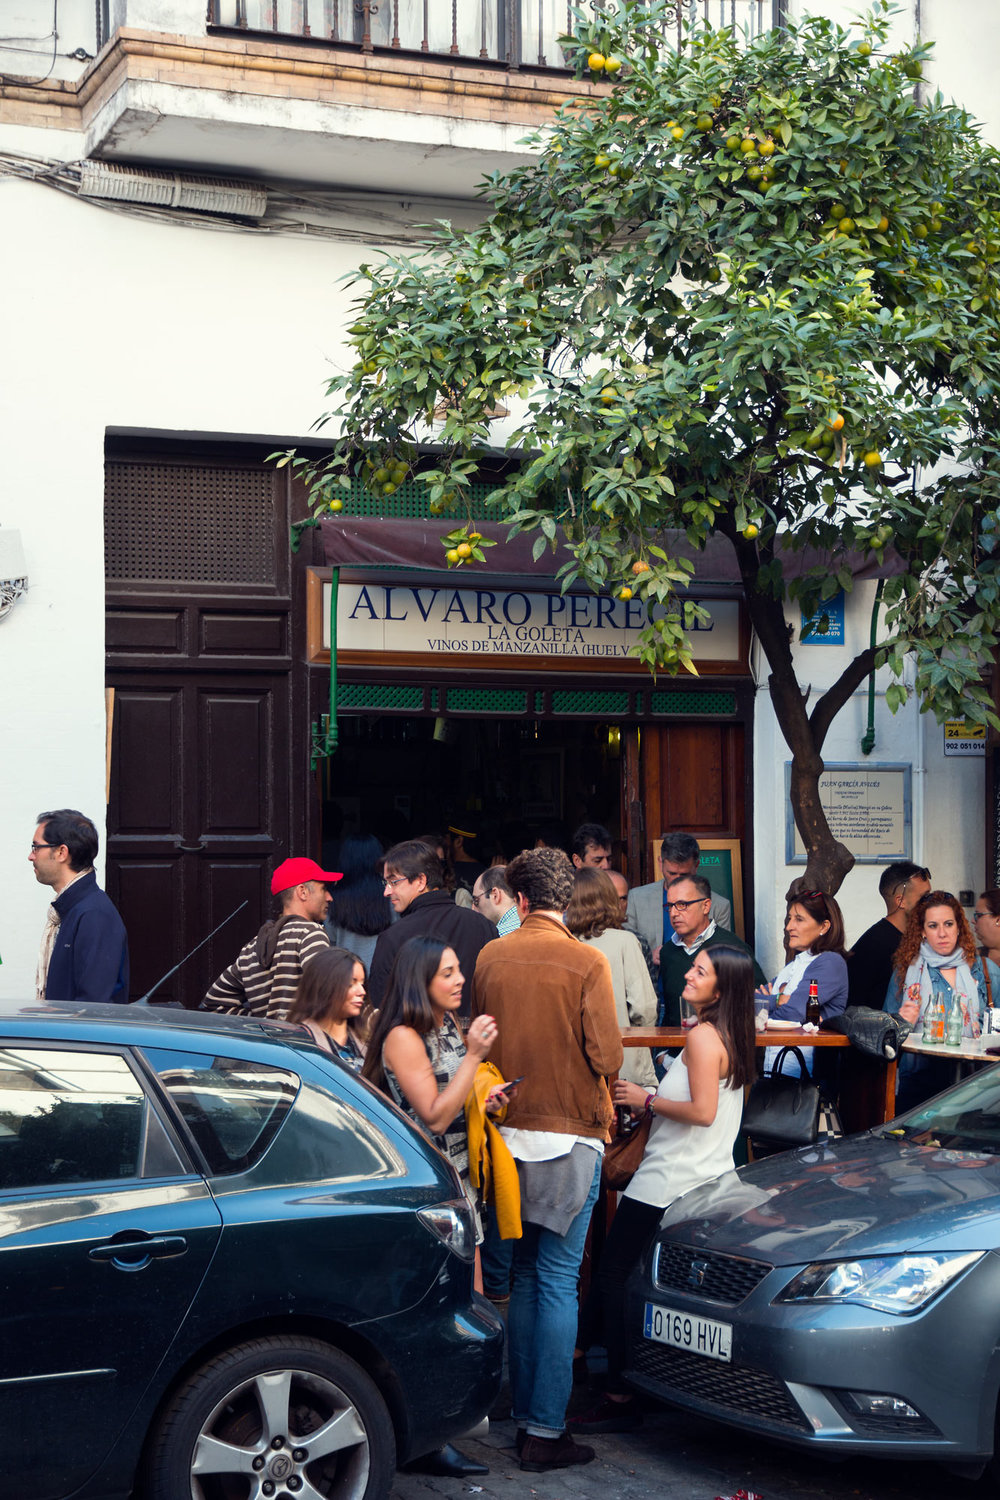 One of the smallest and oldest bars in Seville.